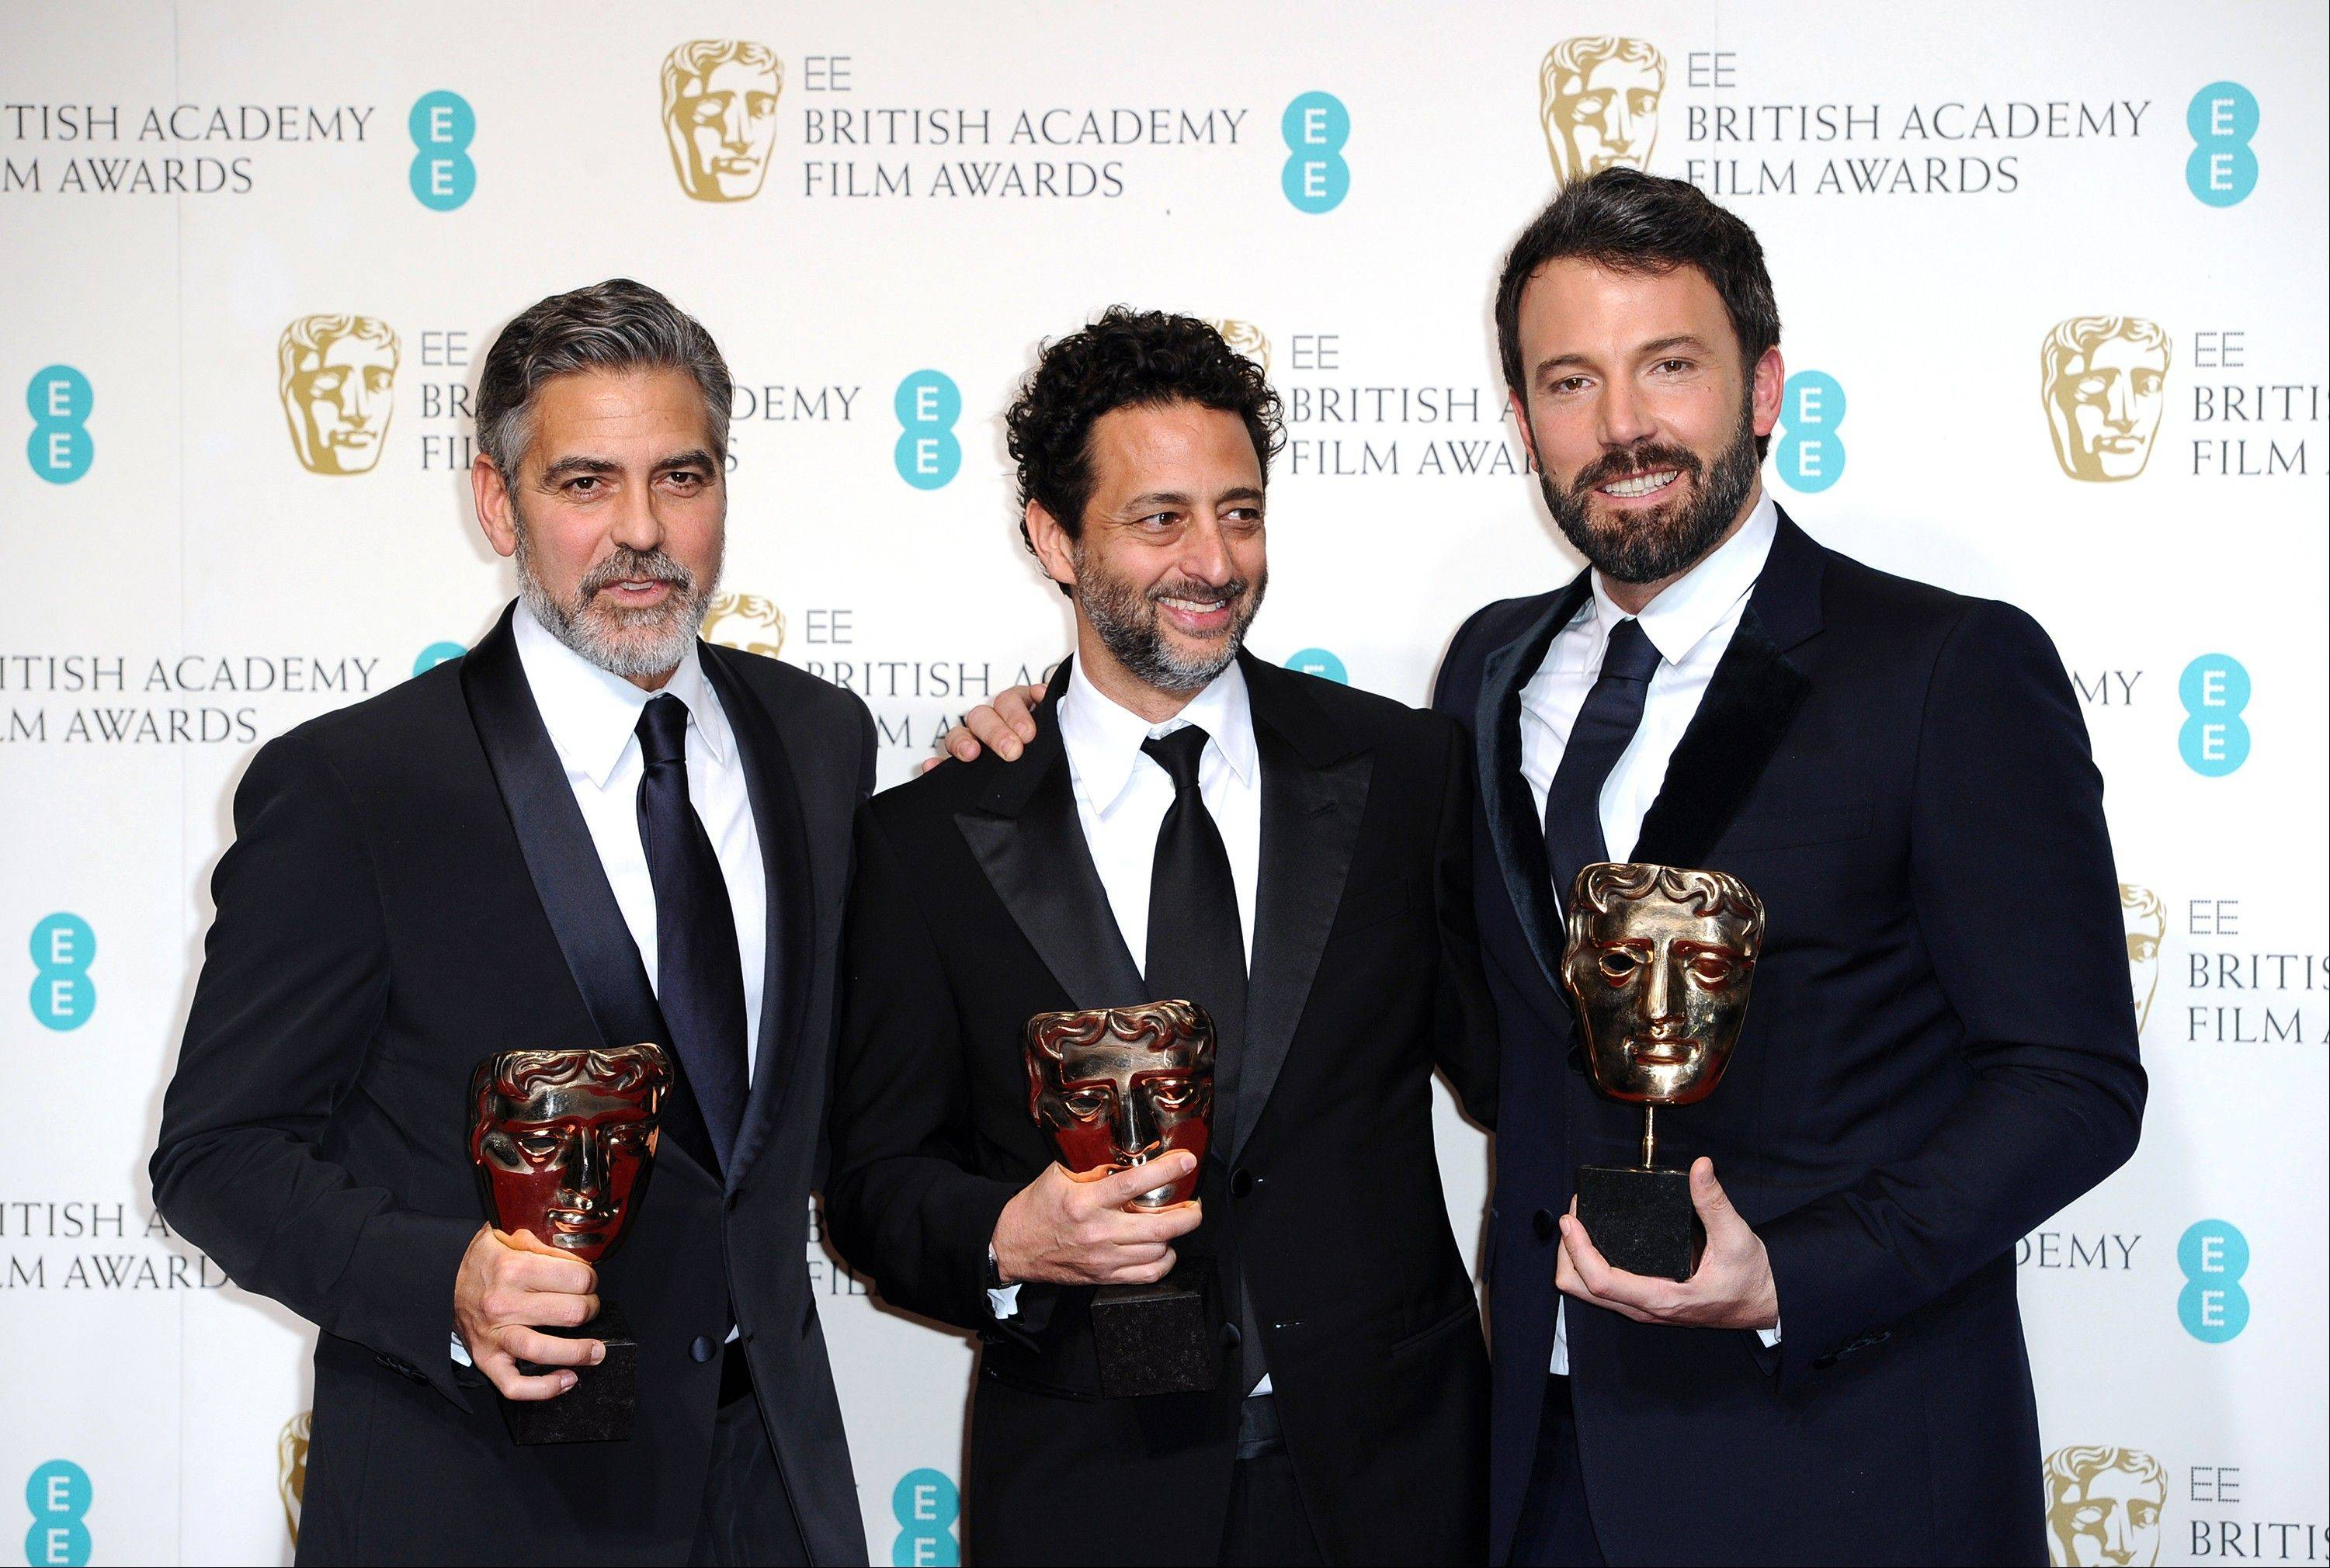 "Actors George Clooney, Grant Heslov, and Ben Affleck pose with the award for Best Film, for ""Argo,"" backstage at the BAFTA Film Awards at the Royal Opera House on Sunday, Feb. 10, 2013, in London. The film was produced by Clooney and Heslov and was directed by Affleck. Allfleck also starred in the film."